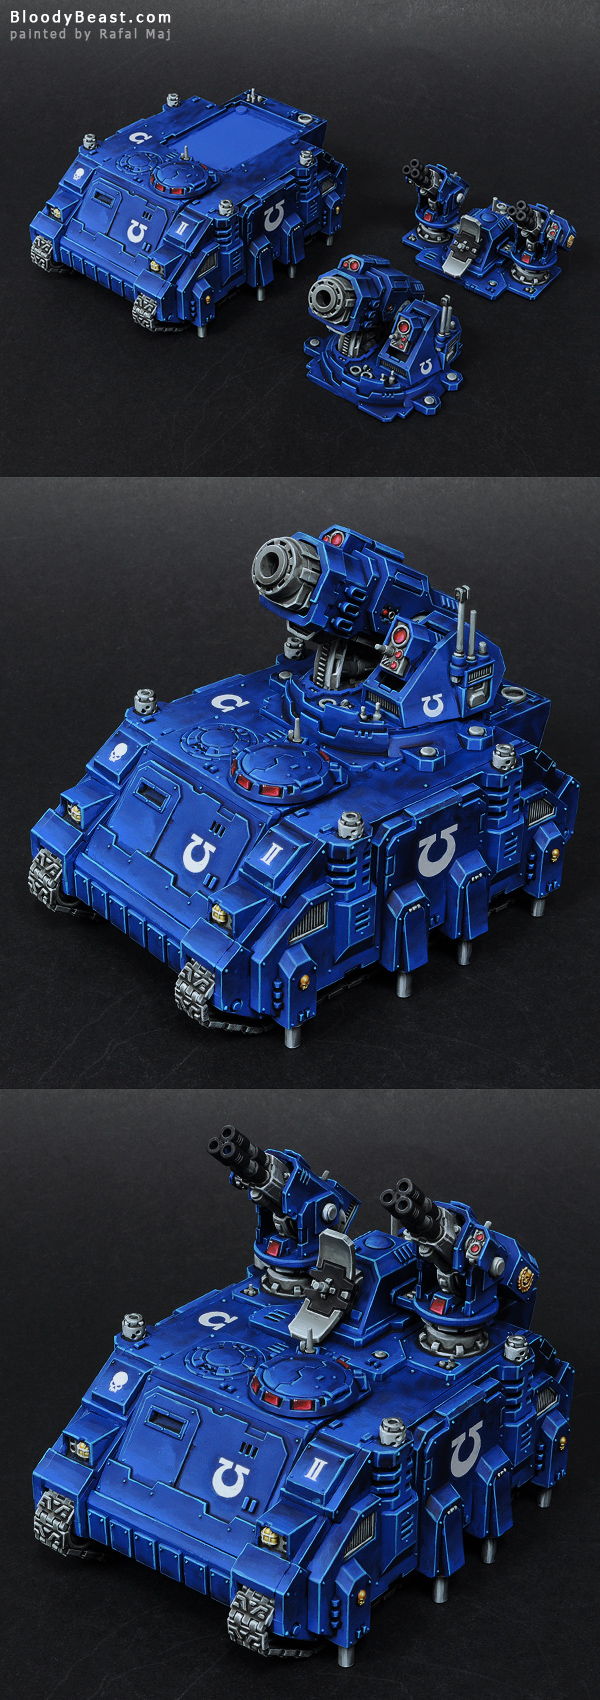 Space Marines Ultramarines Hunter and Stalker Magnetized Parts painted by Rafal Maj (BloodyBeast.com)